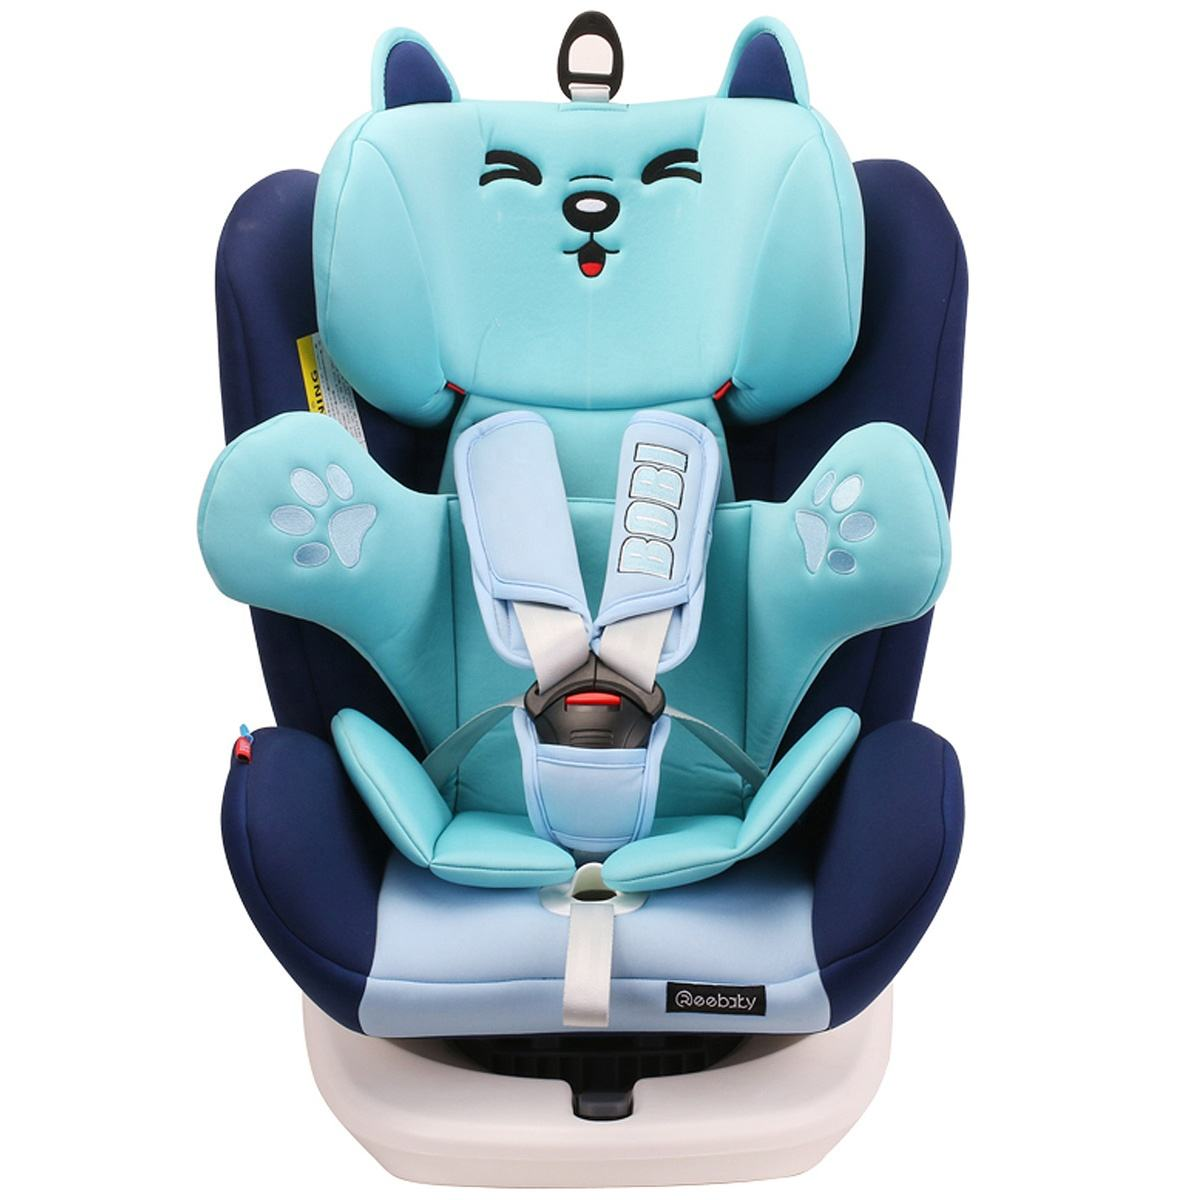 360 degree rotation child seat/baby car seat with isofix